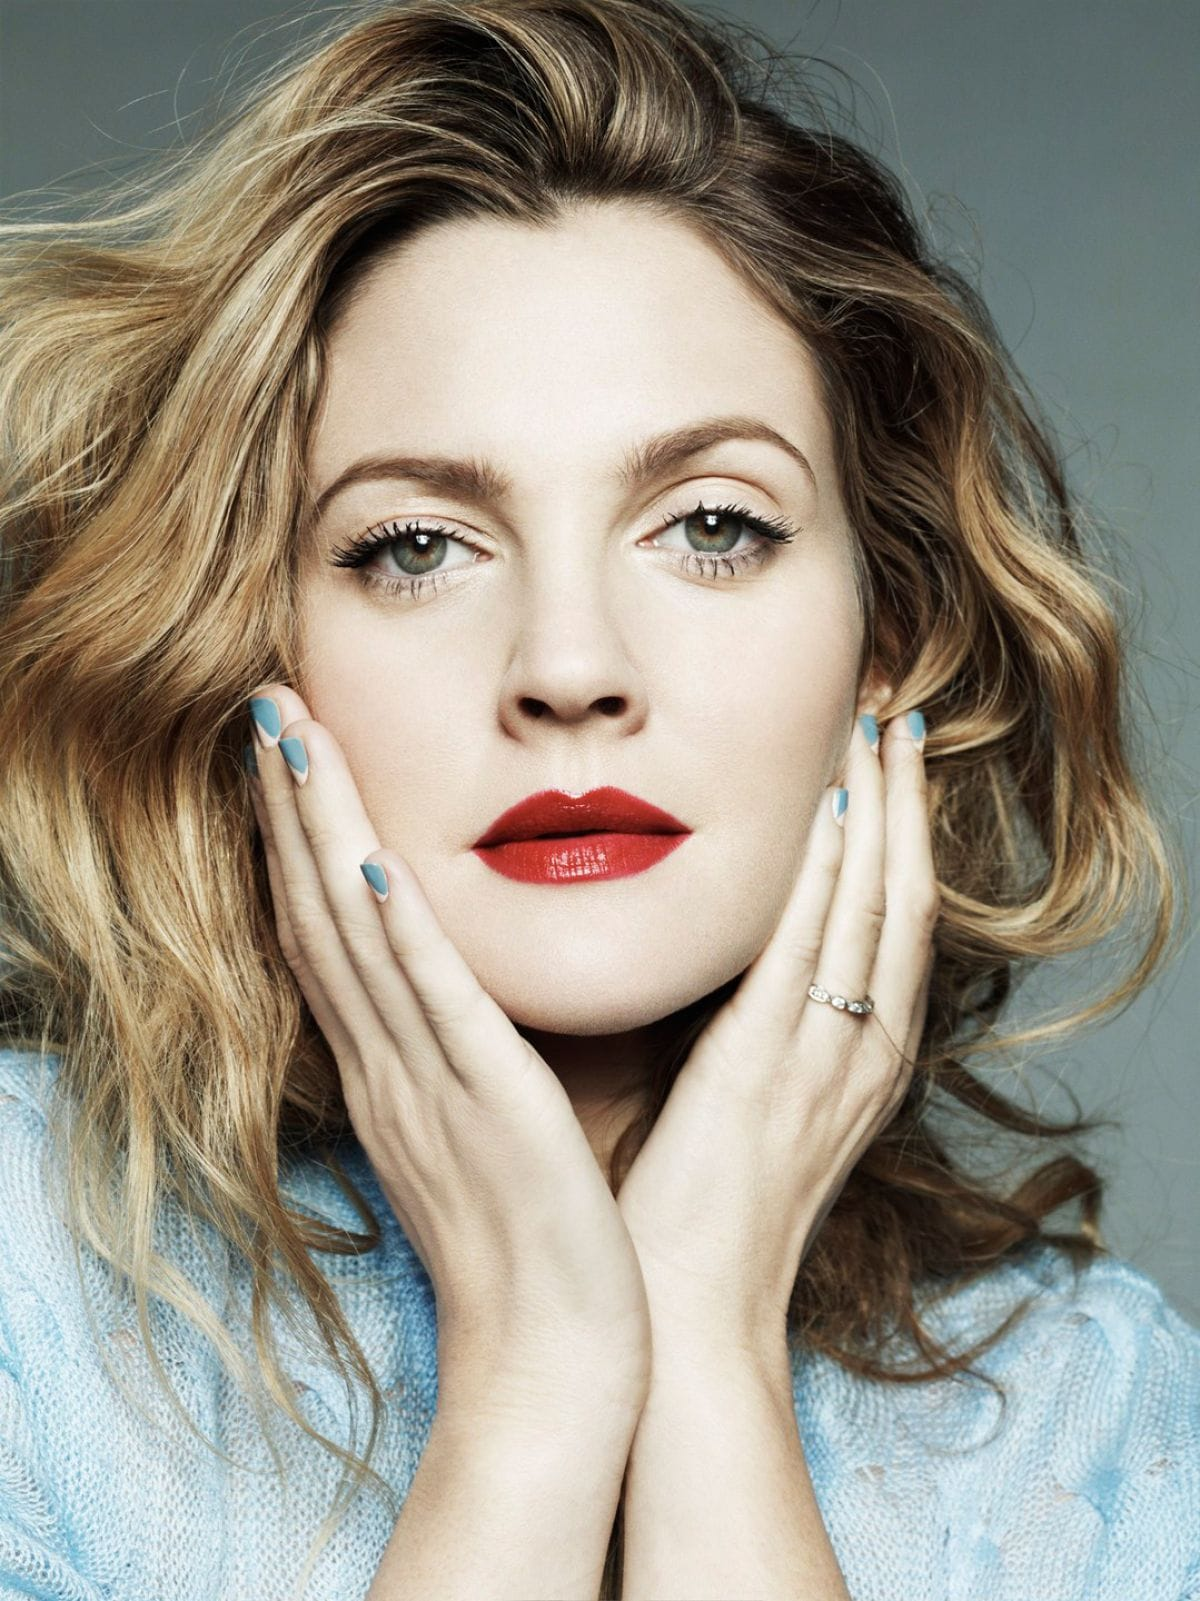 Drew Barrymore HD